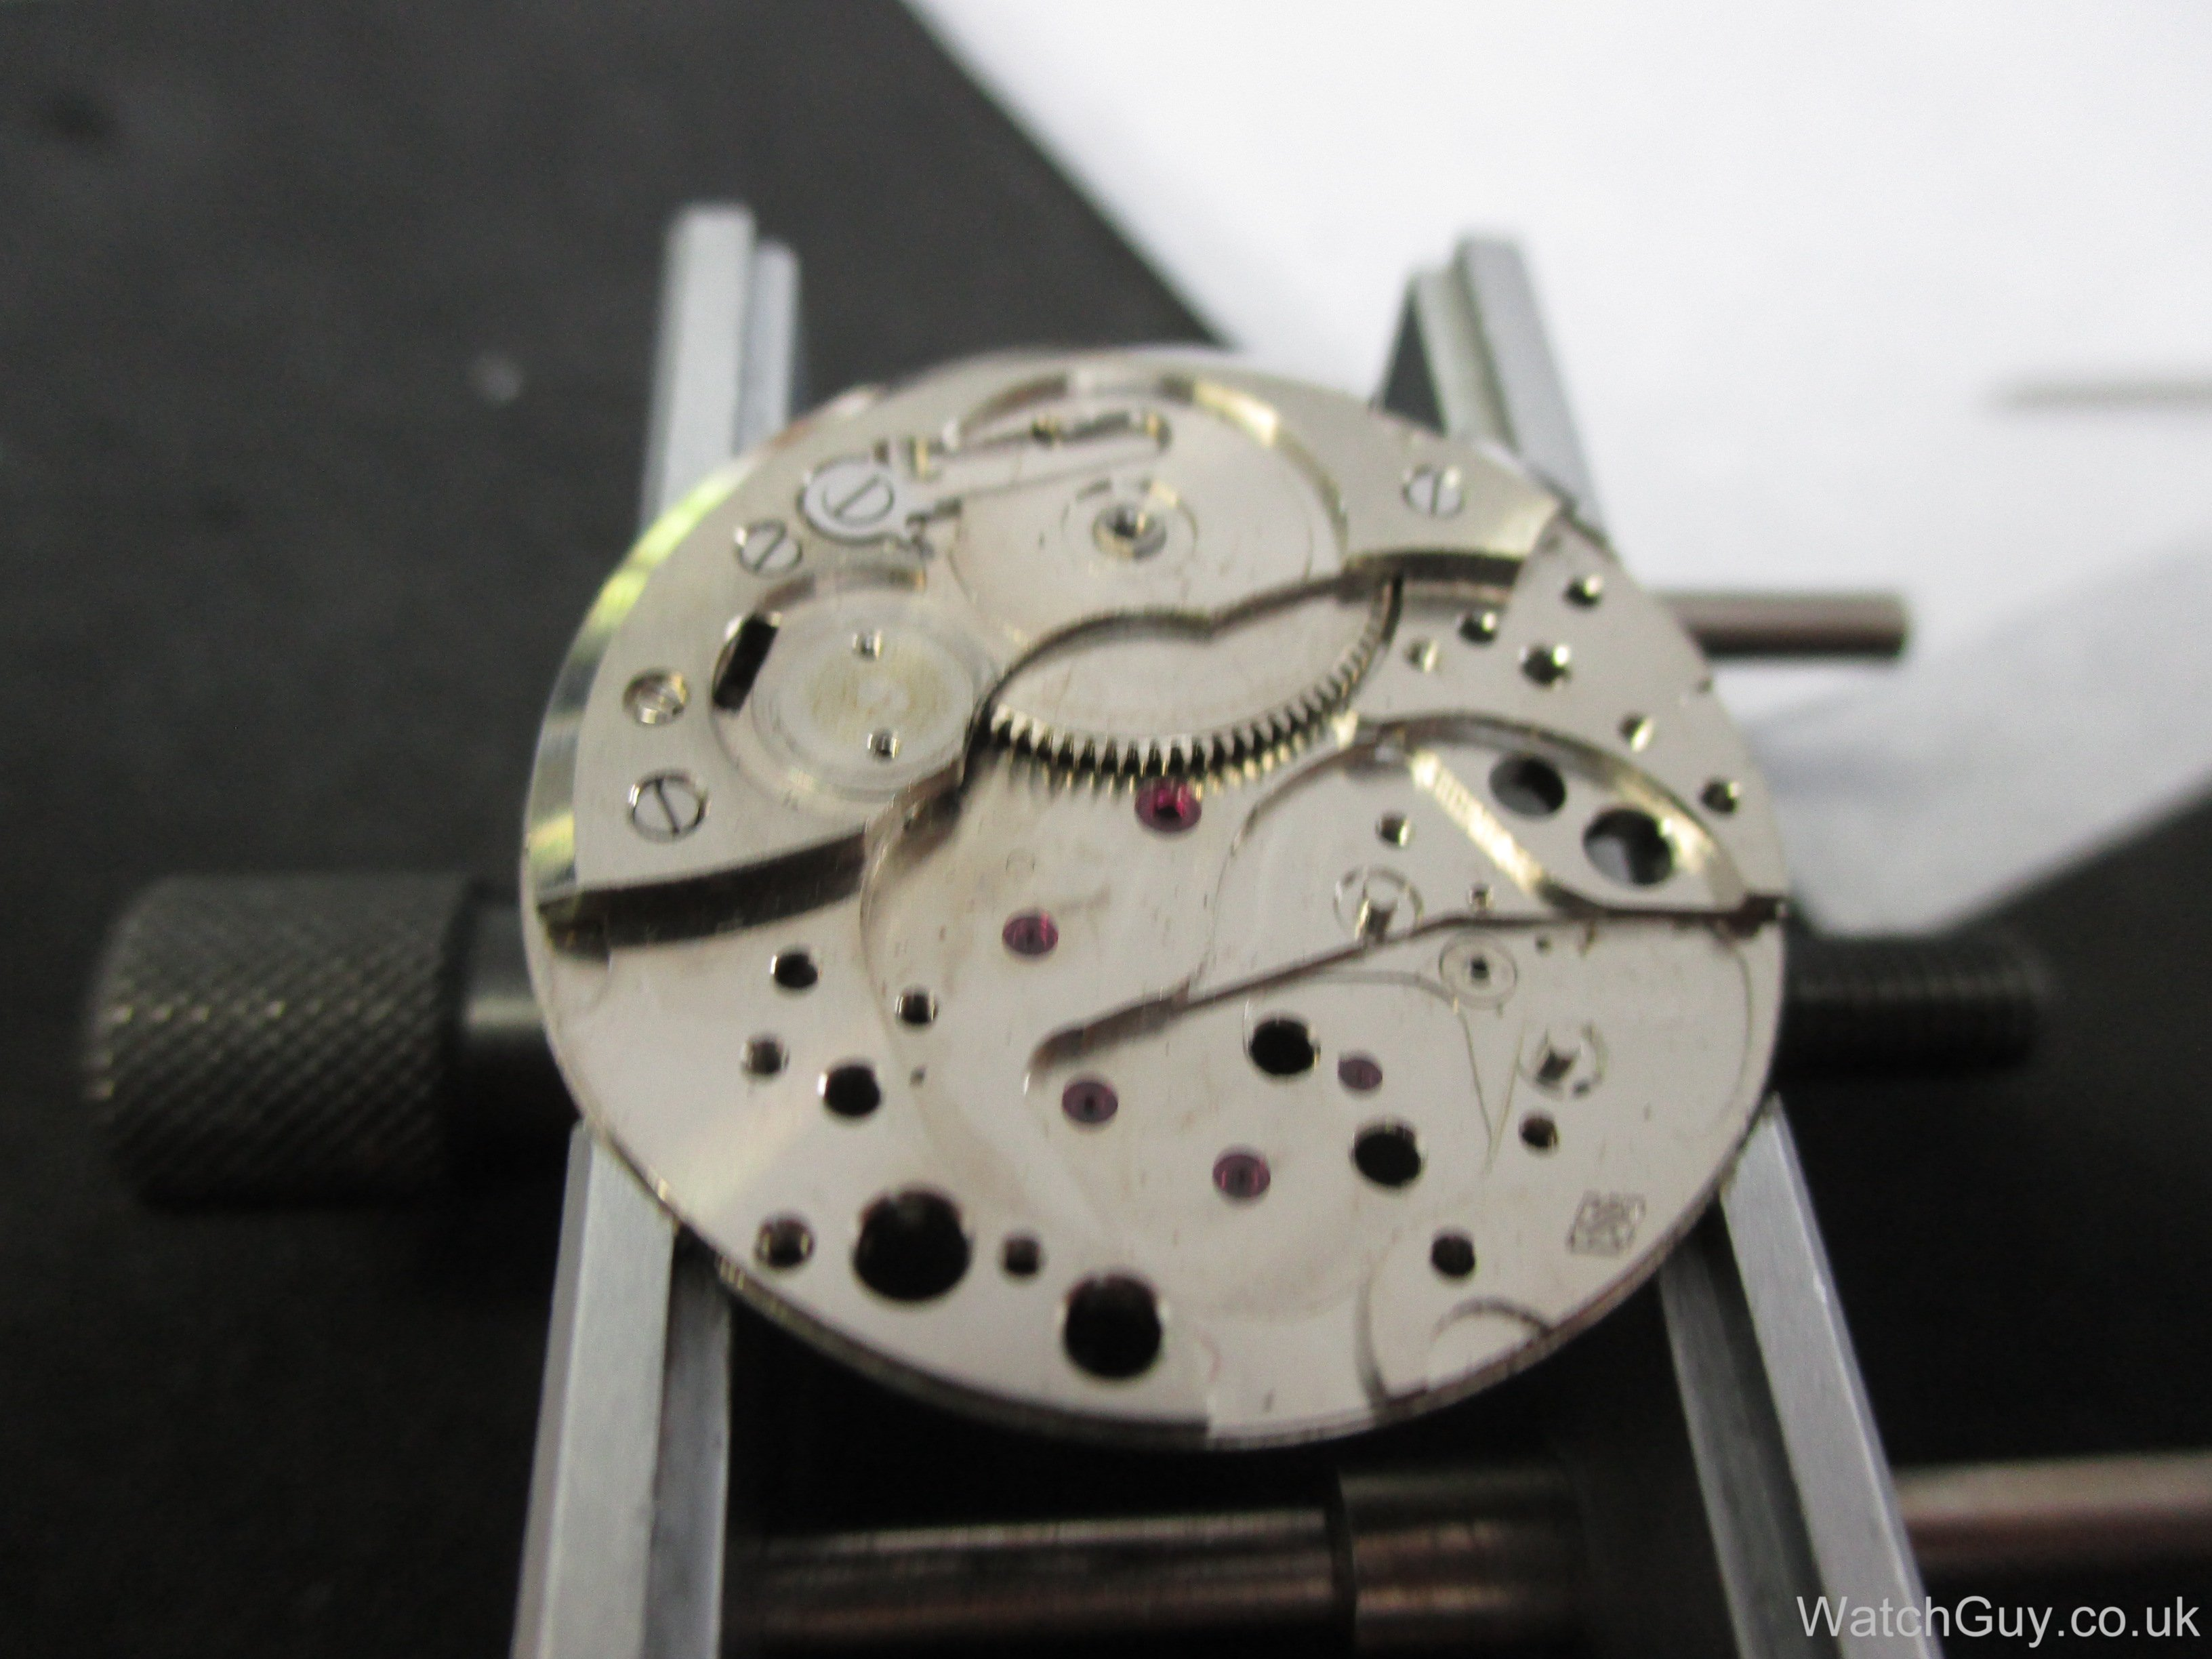 Service Revue watch for the blind calibre GT77